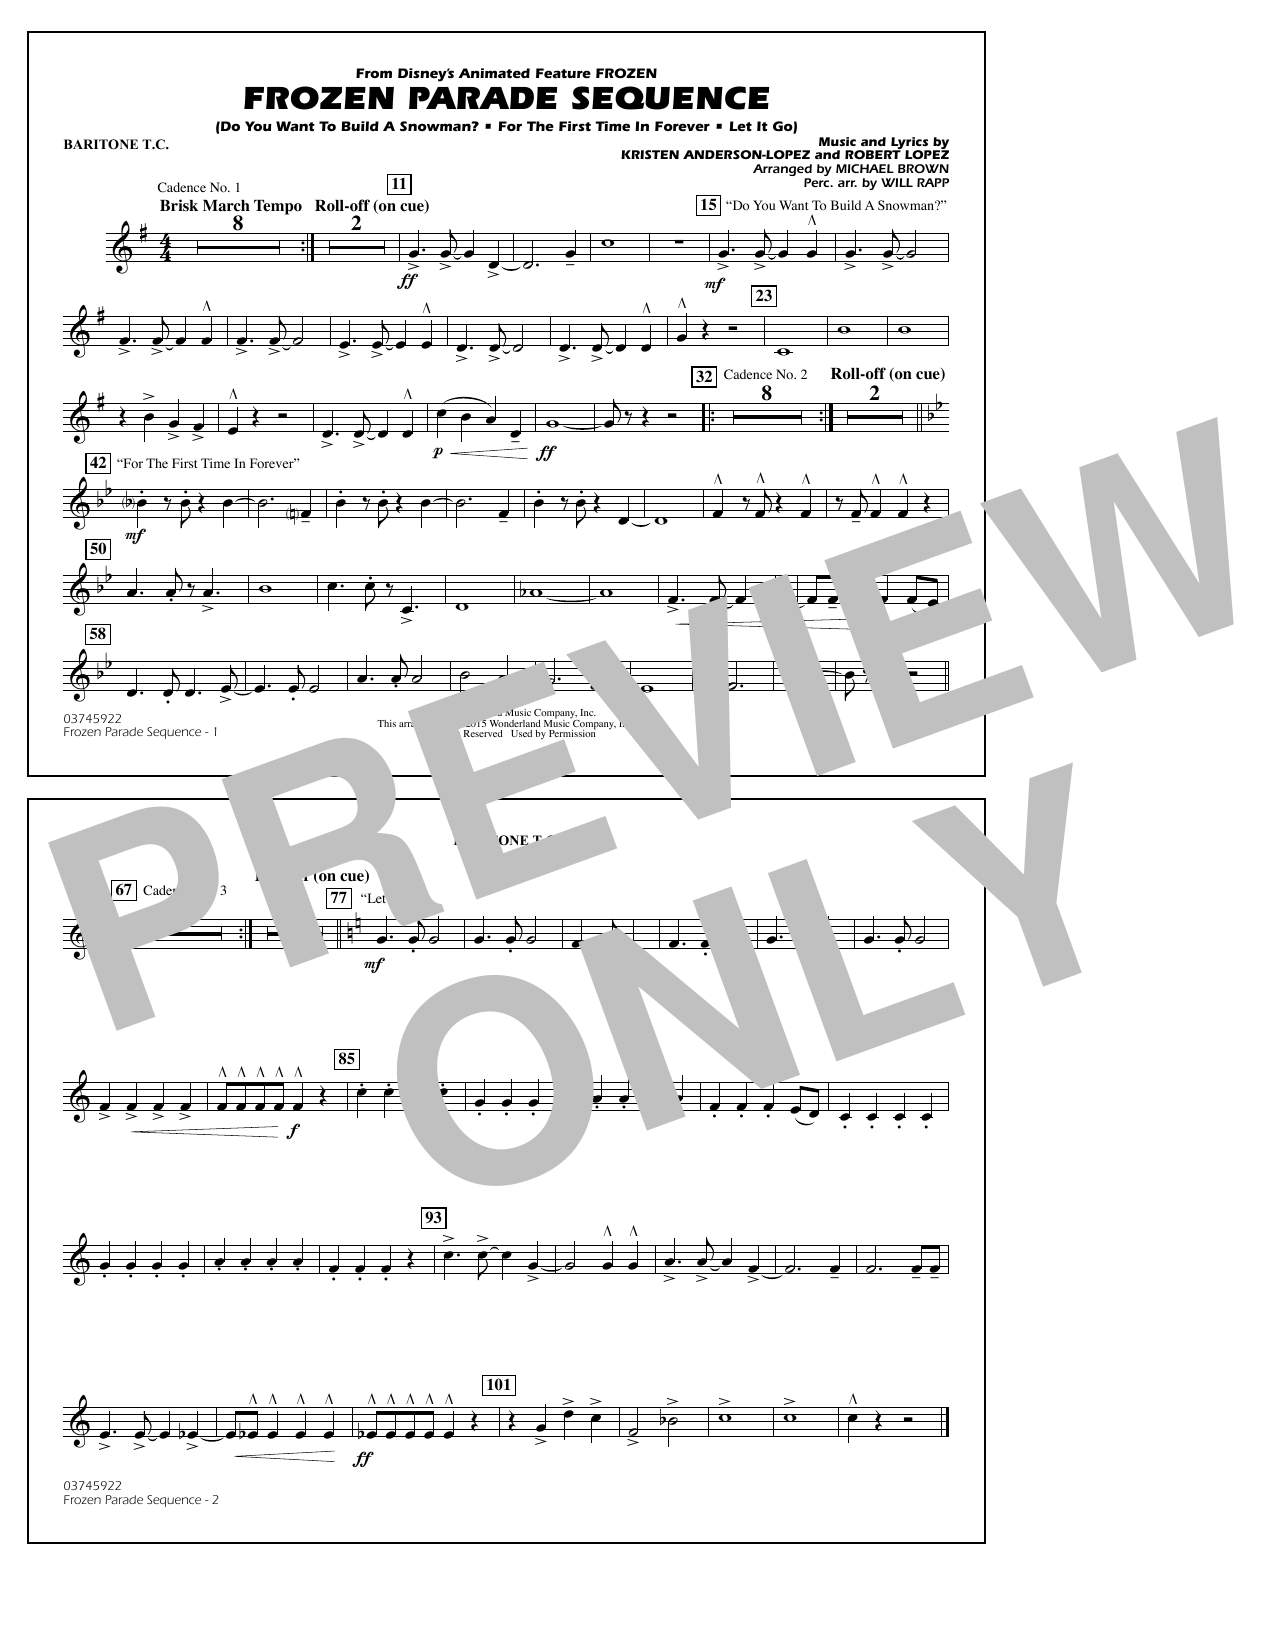 Michael Brown Frozen Parade Sequence - Baritone T.C. sheet music notes and chords. Download Printable PDF.